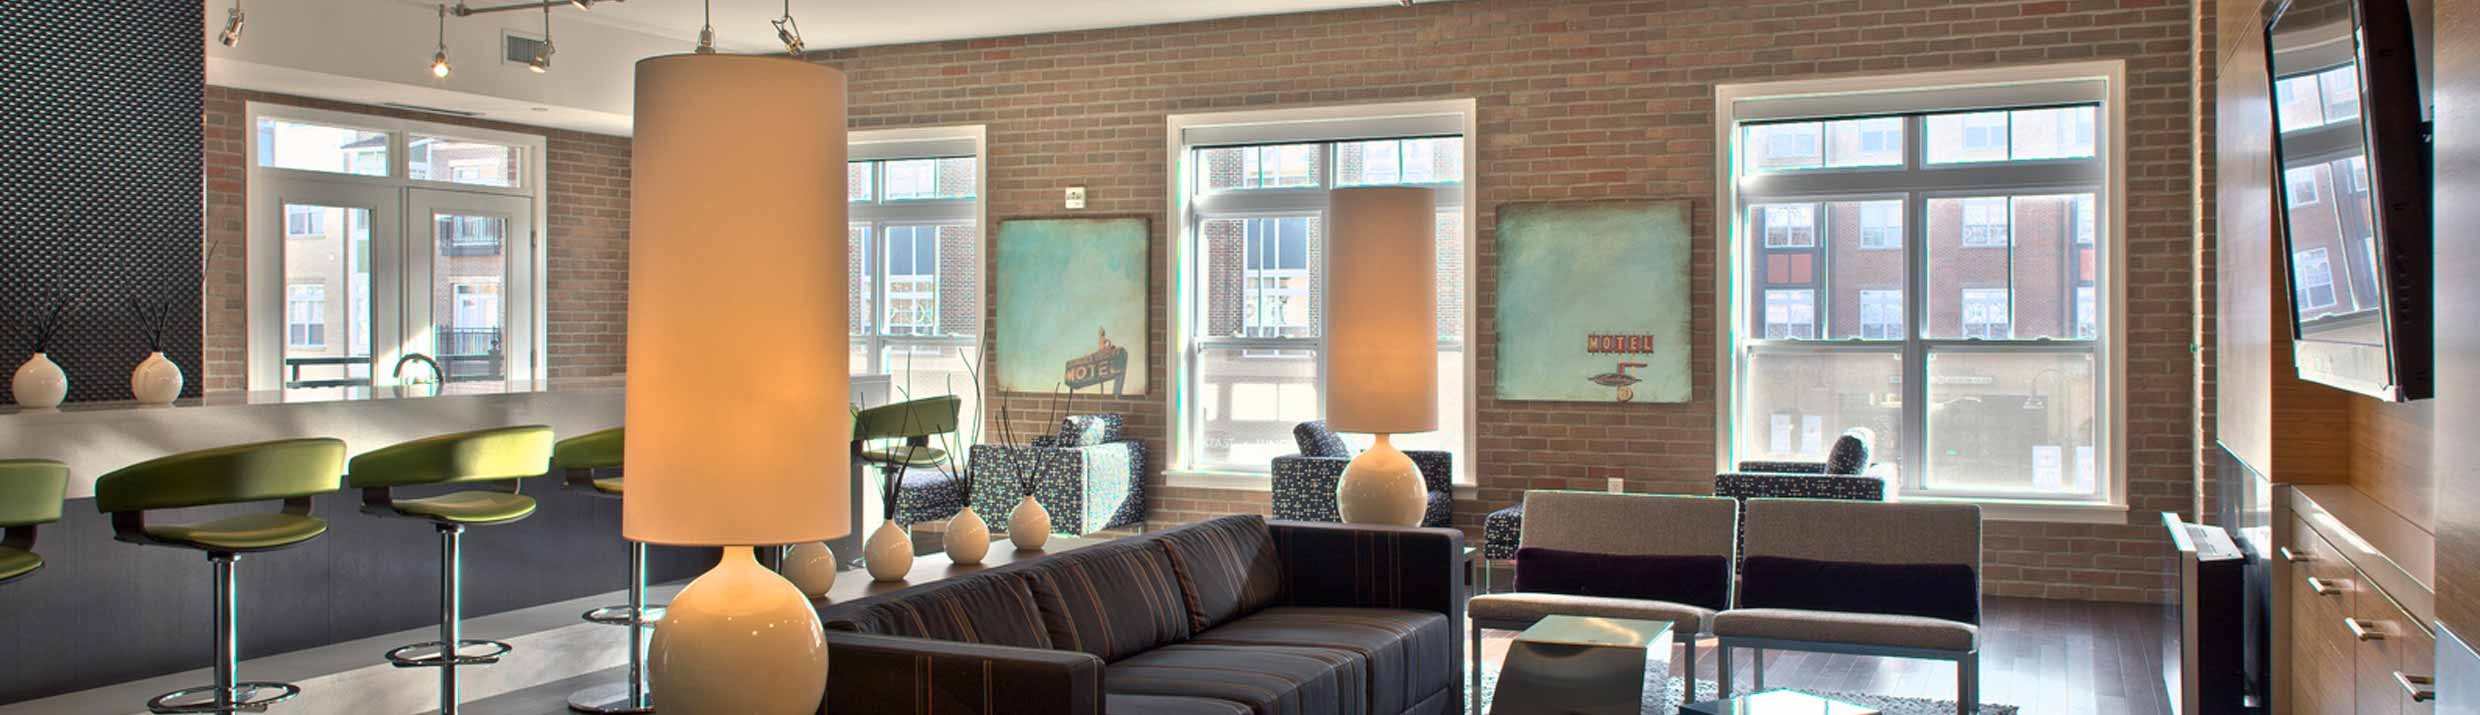 Luxury Apartments In South Bend Indiana